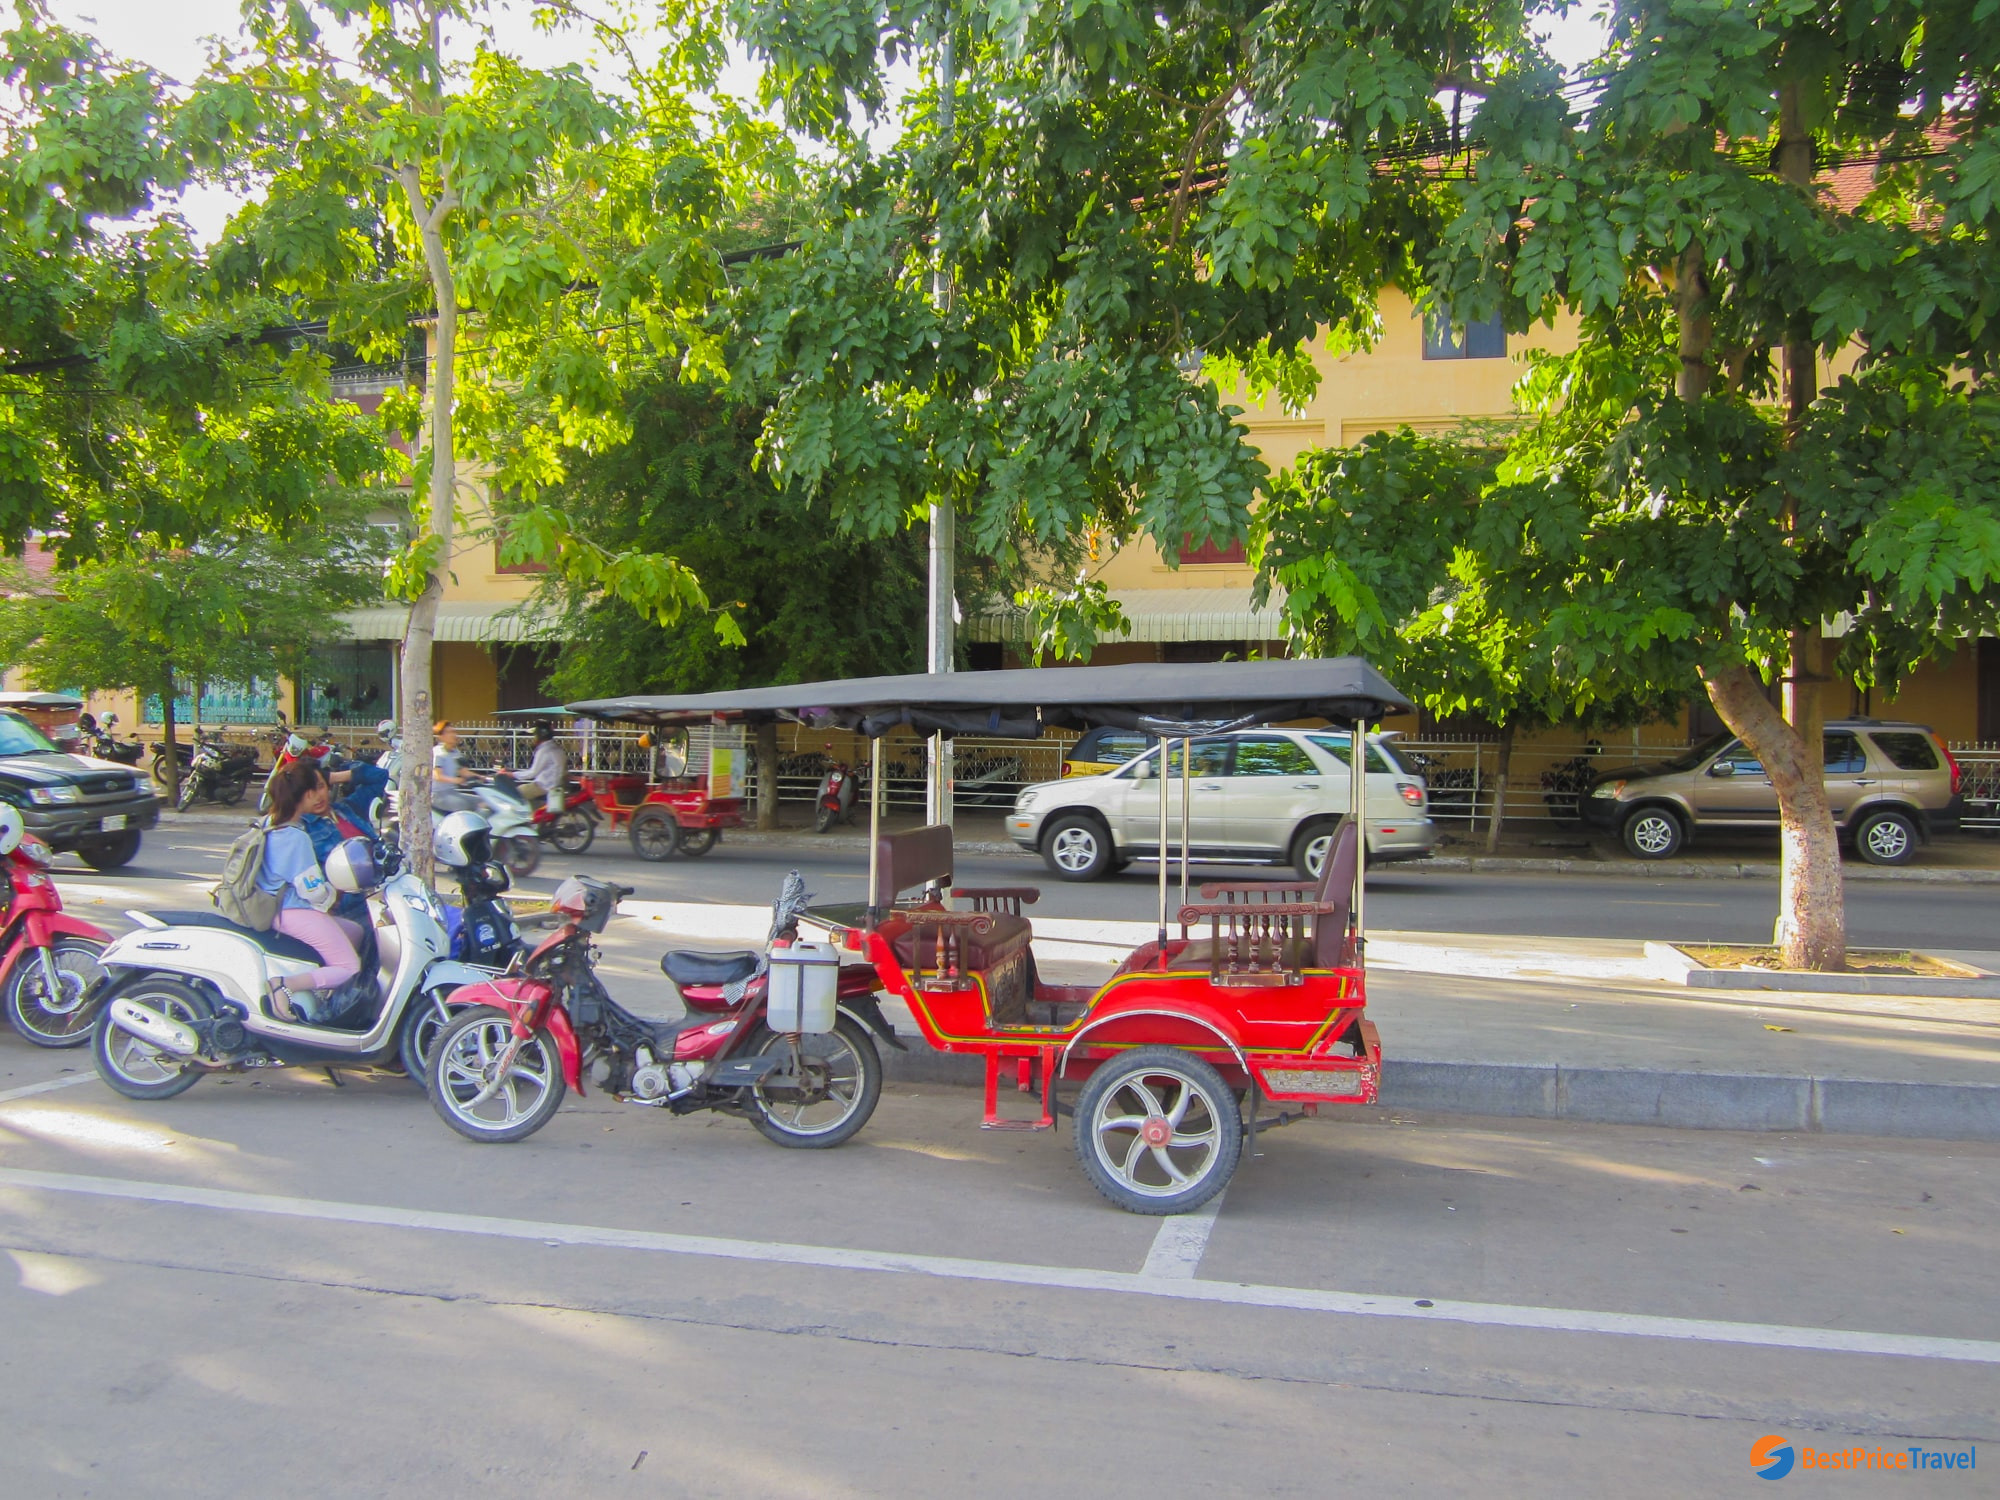 Tuk Tuk - Popular transport in Phnom Penh